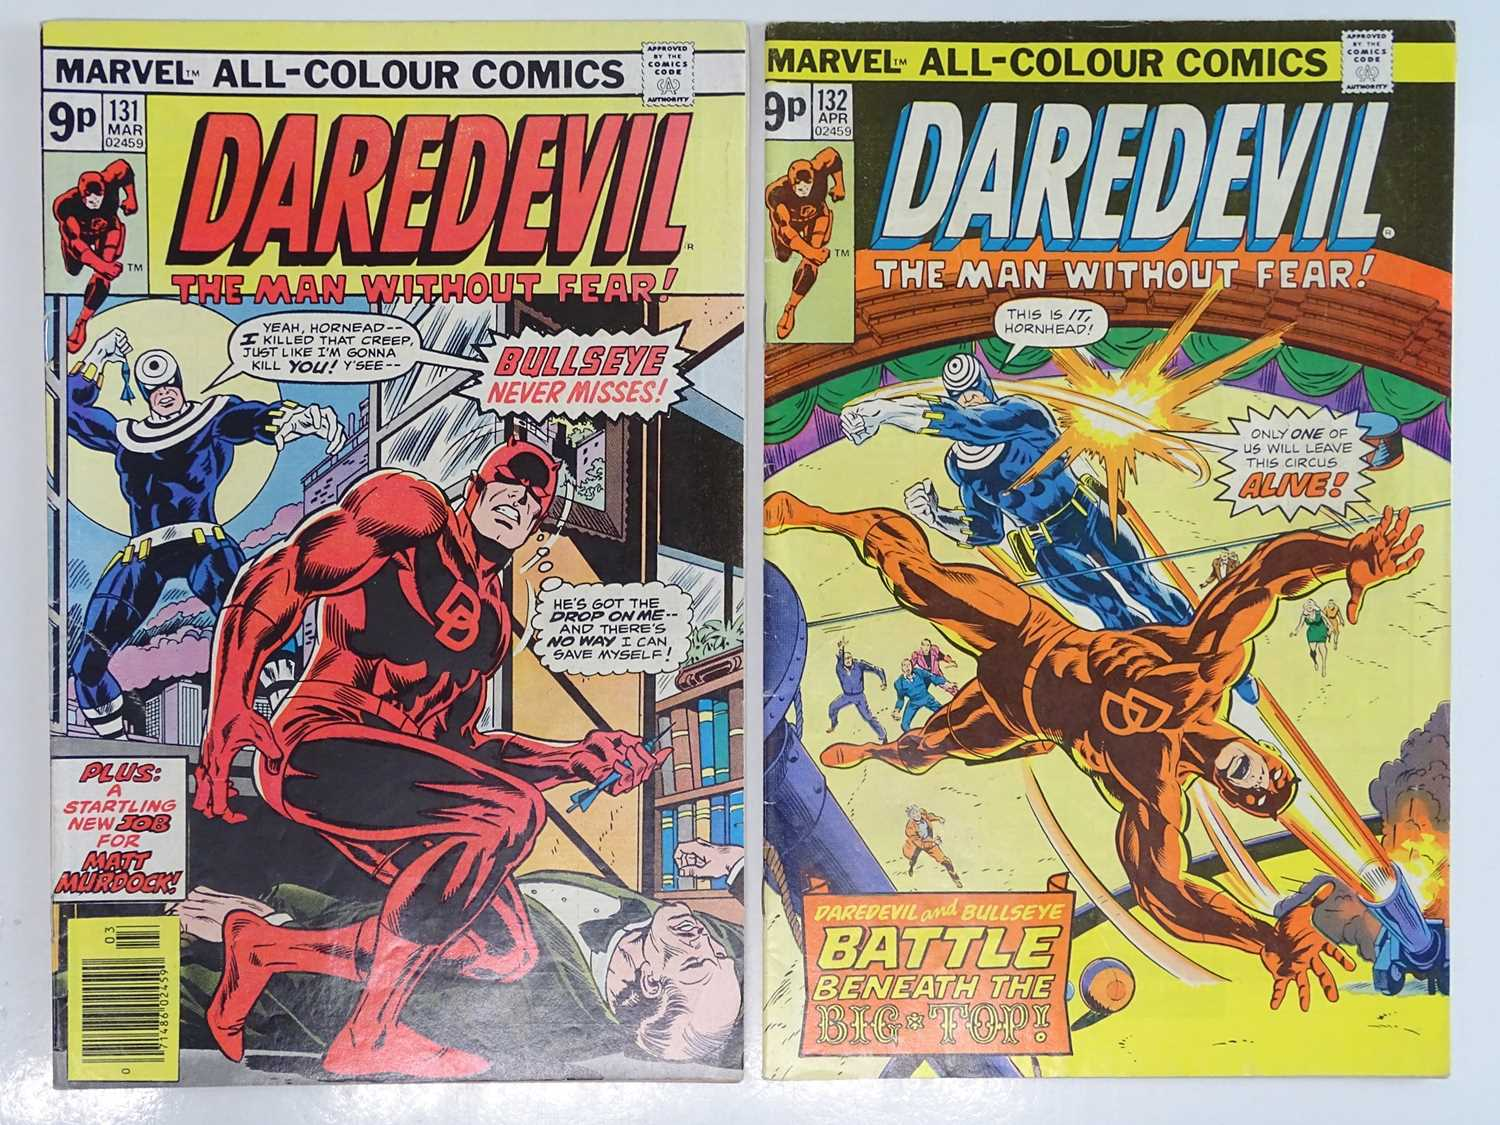 DAREDEVIL #131 & 132 - (2 in Lot) - (1976 - MARVEL - UK Price Variant) - First & Second appearance